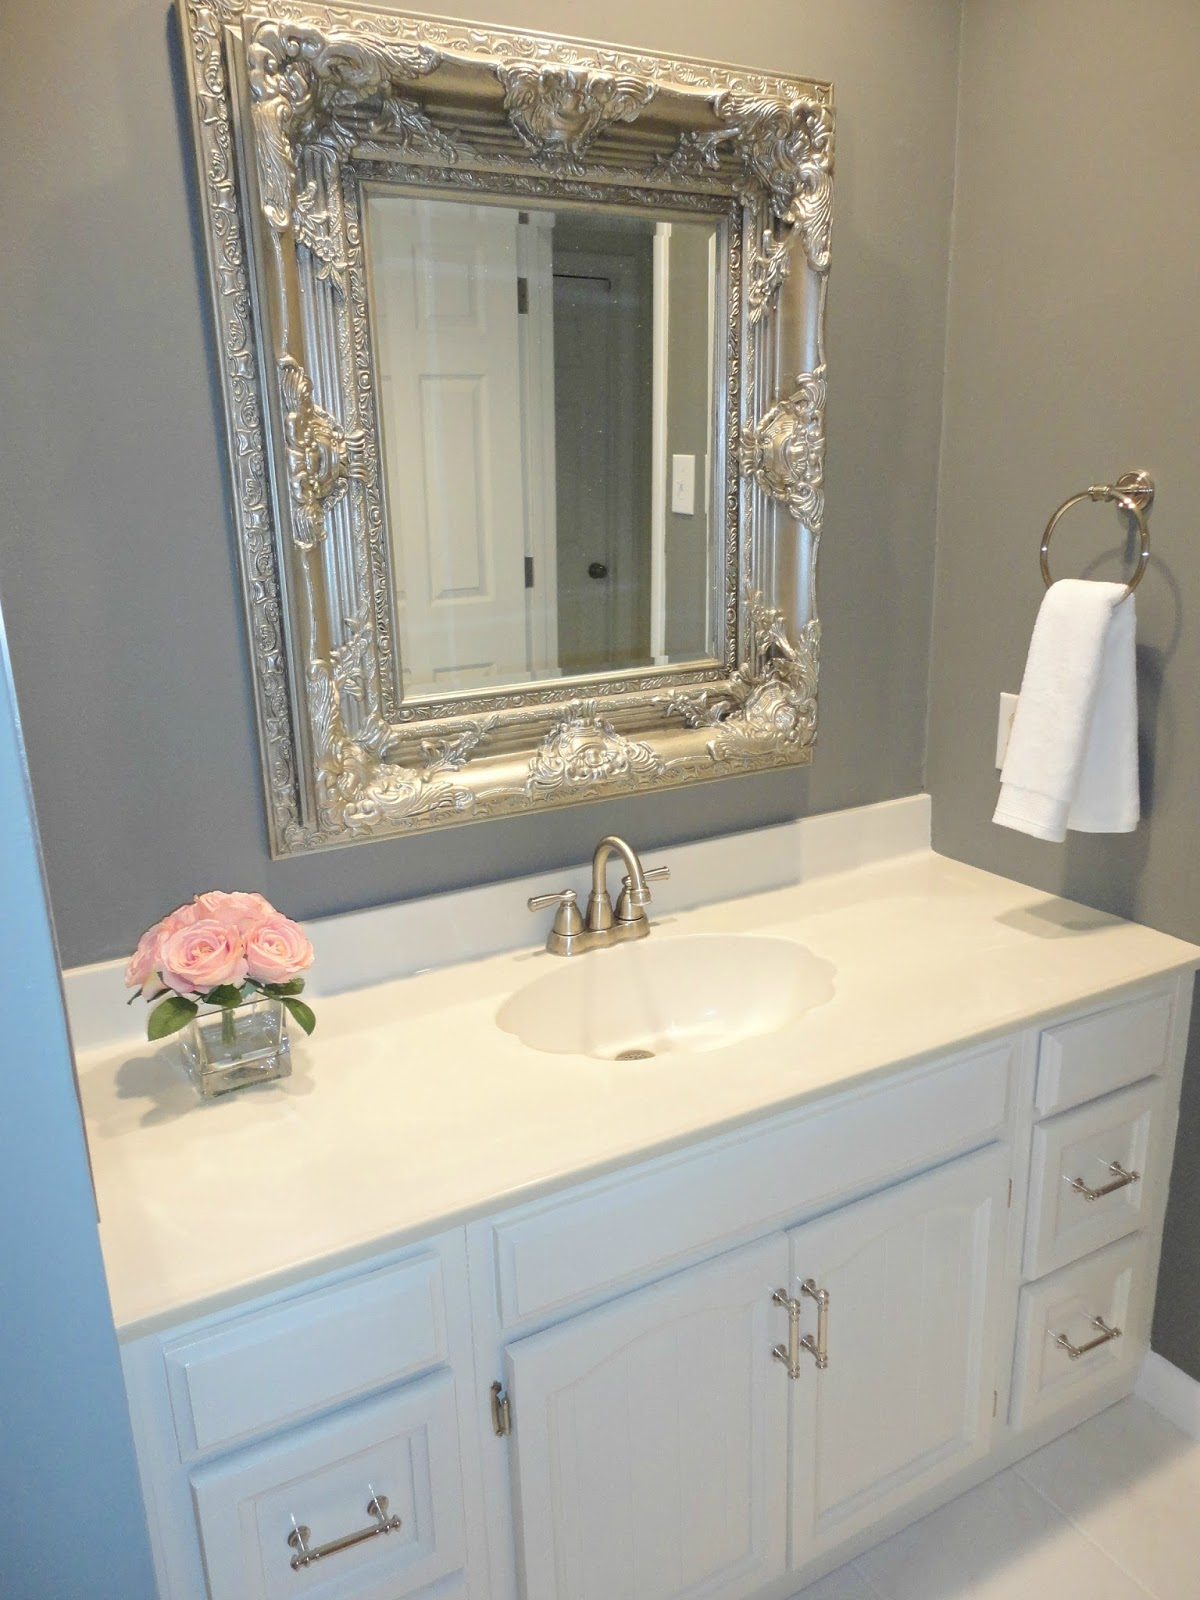 Cheap Bathroom Remodel Diy livelovediy: diy bathroom remodel on a budget